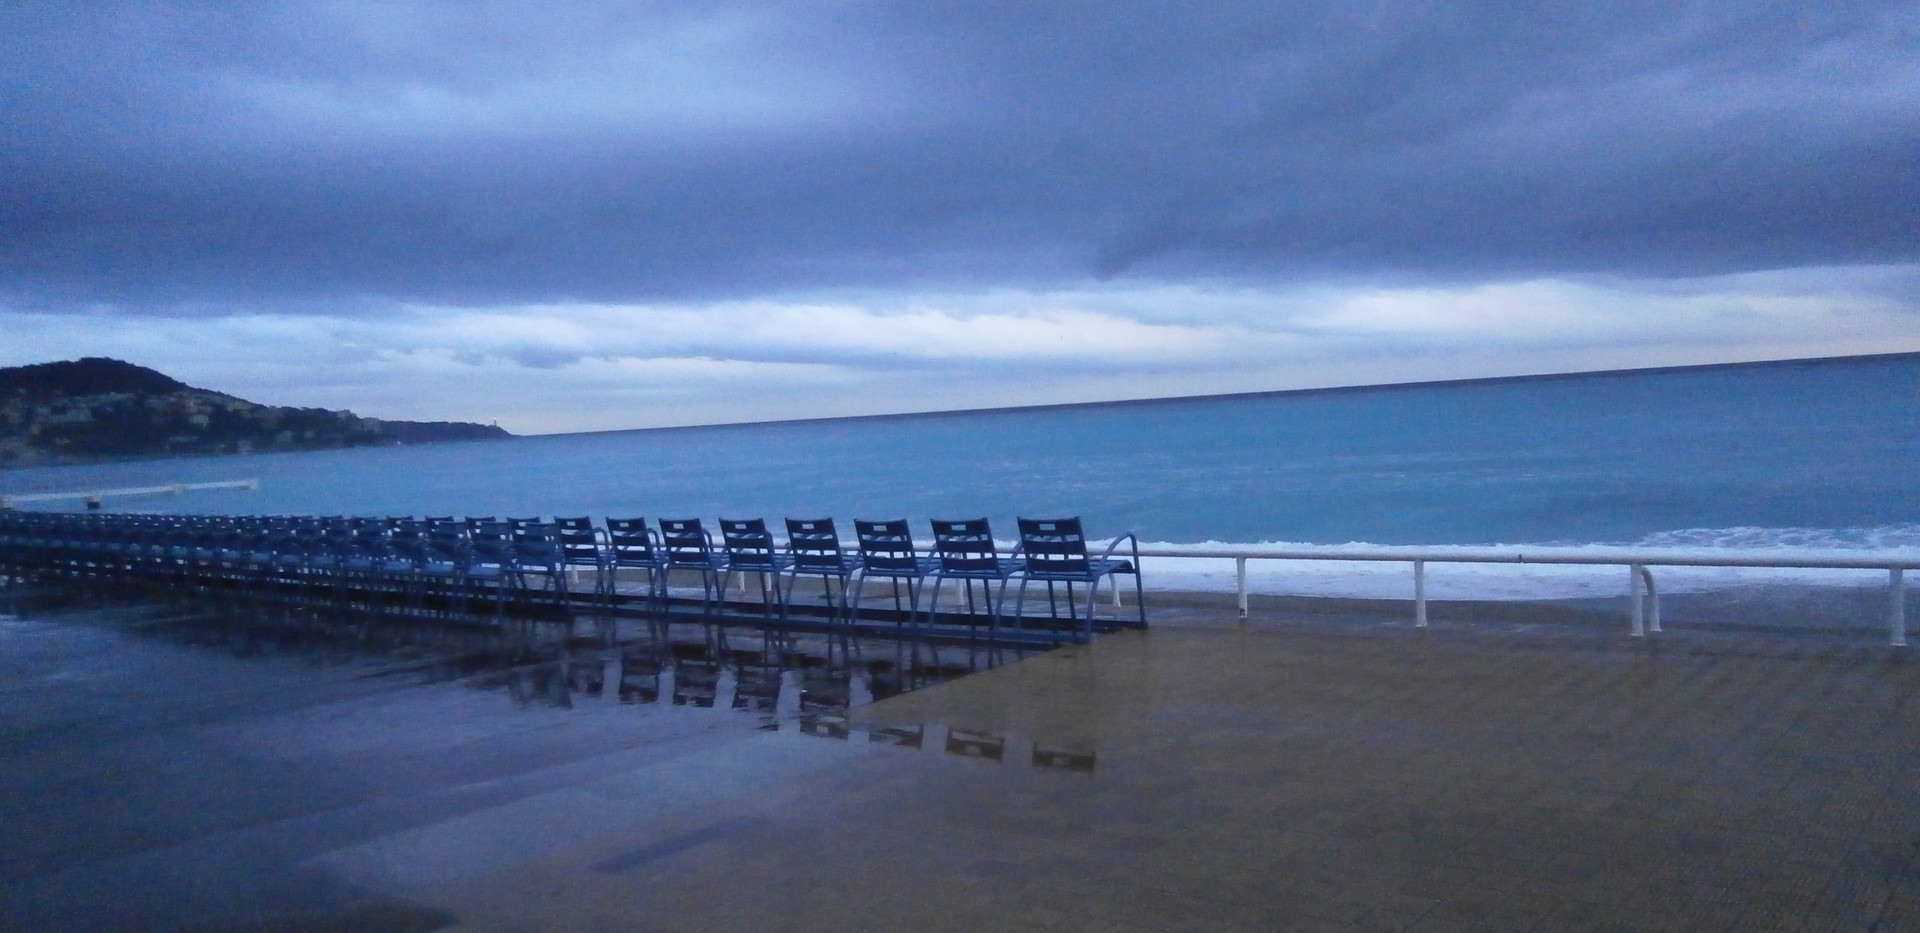 Iconic blue chairs along the Promenade